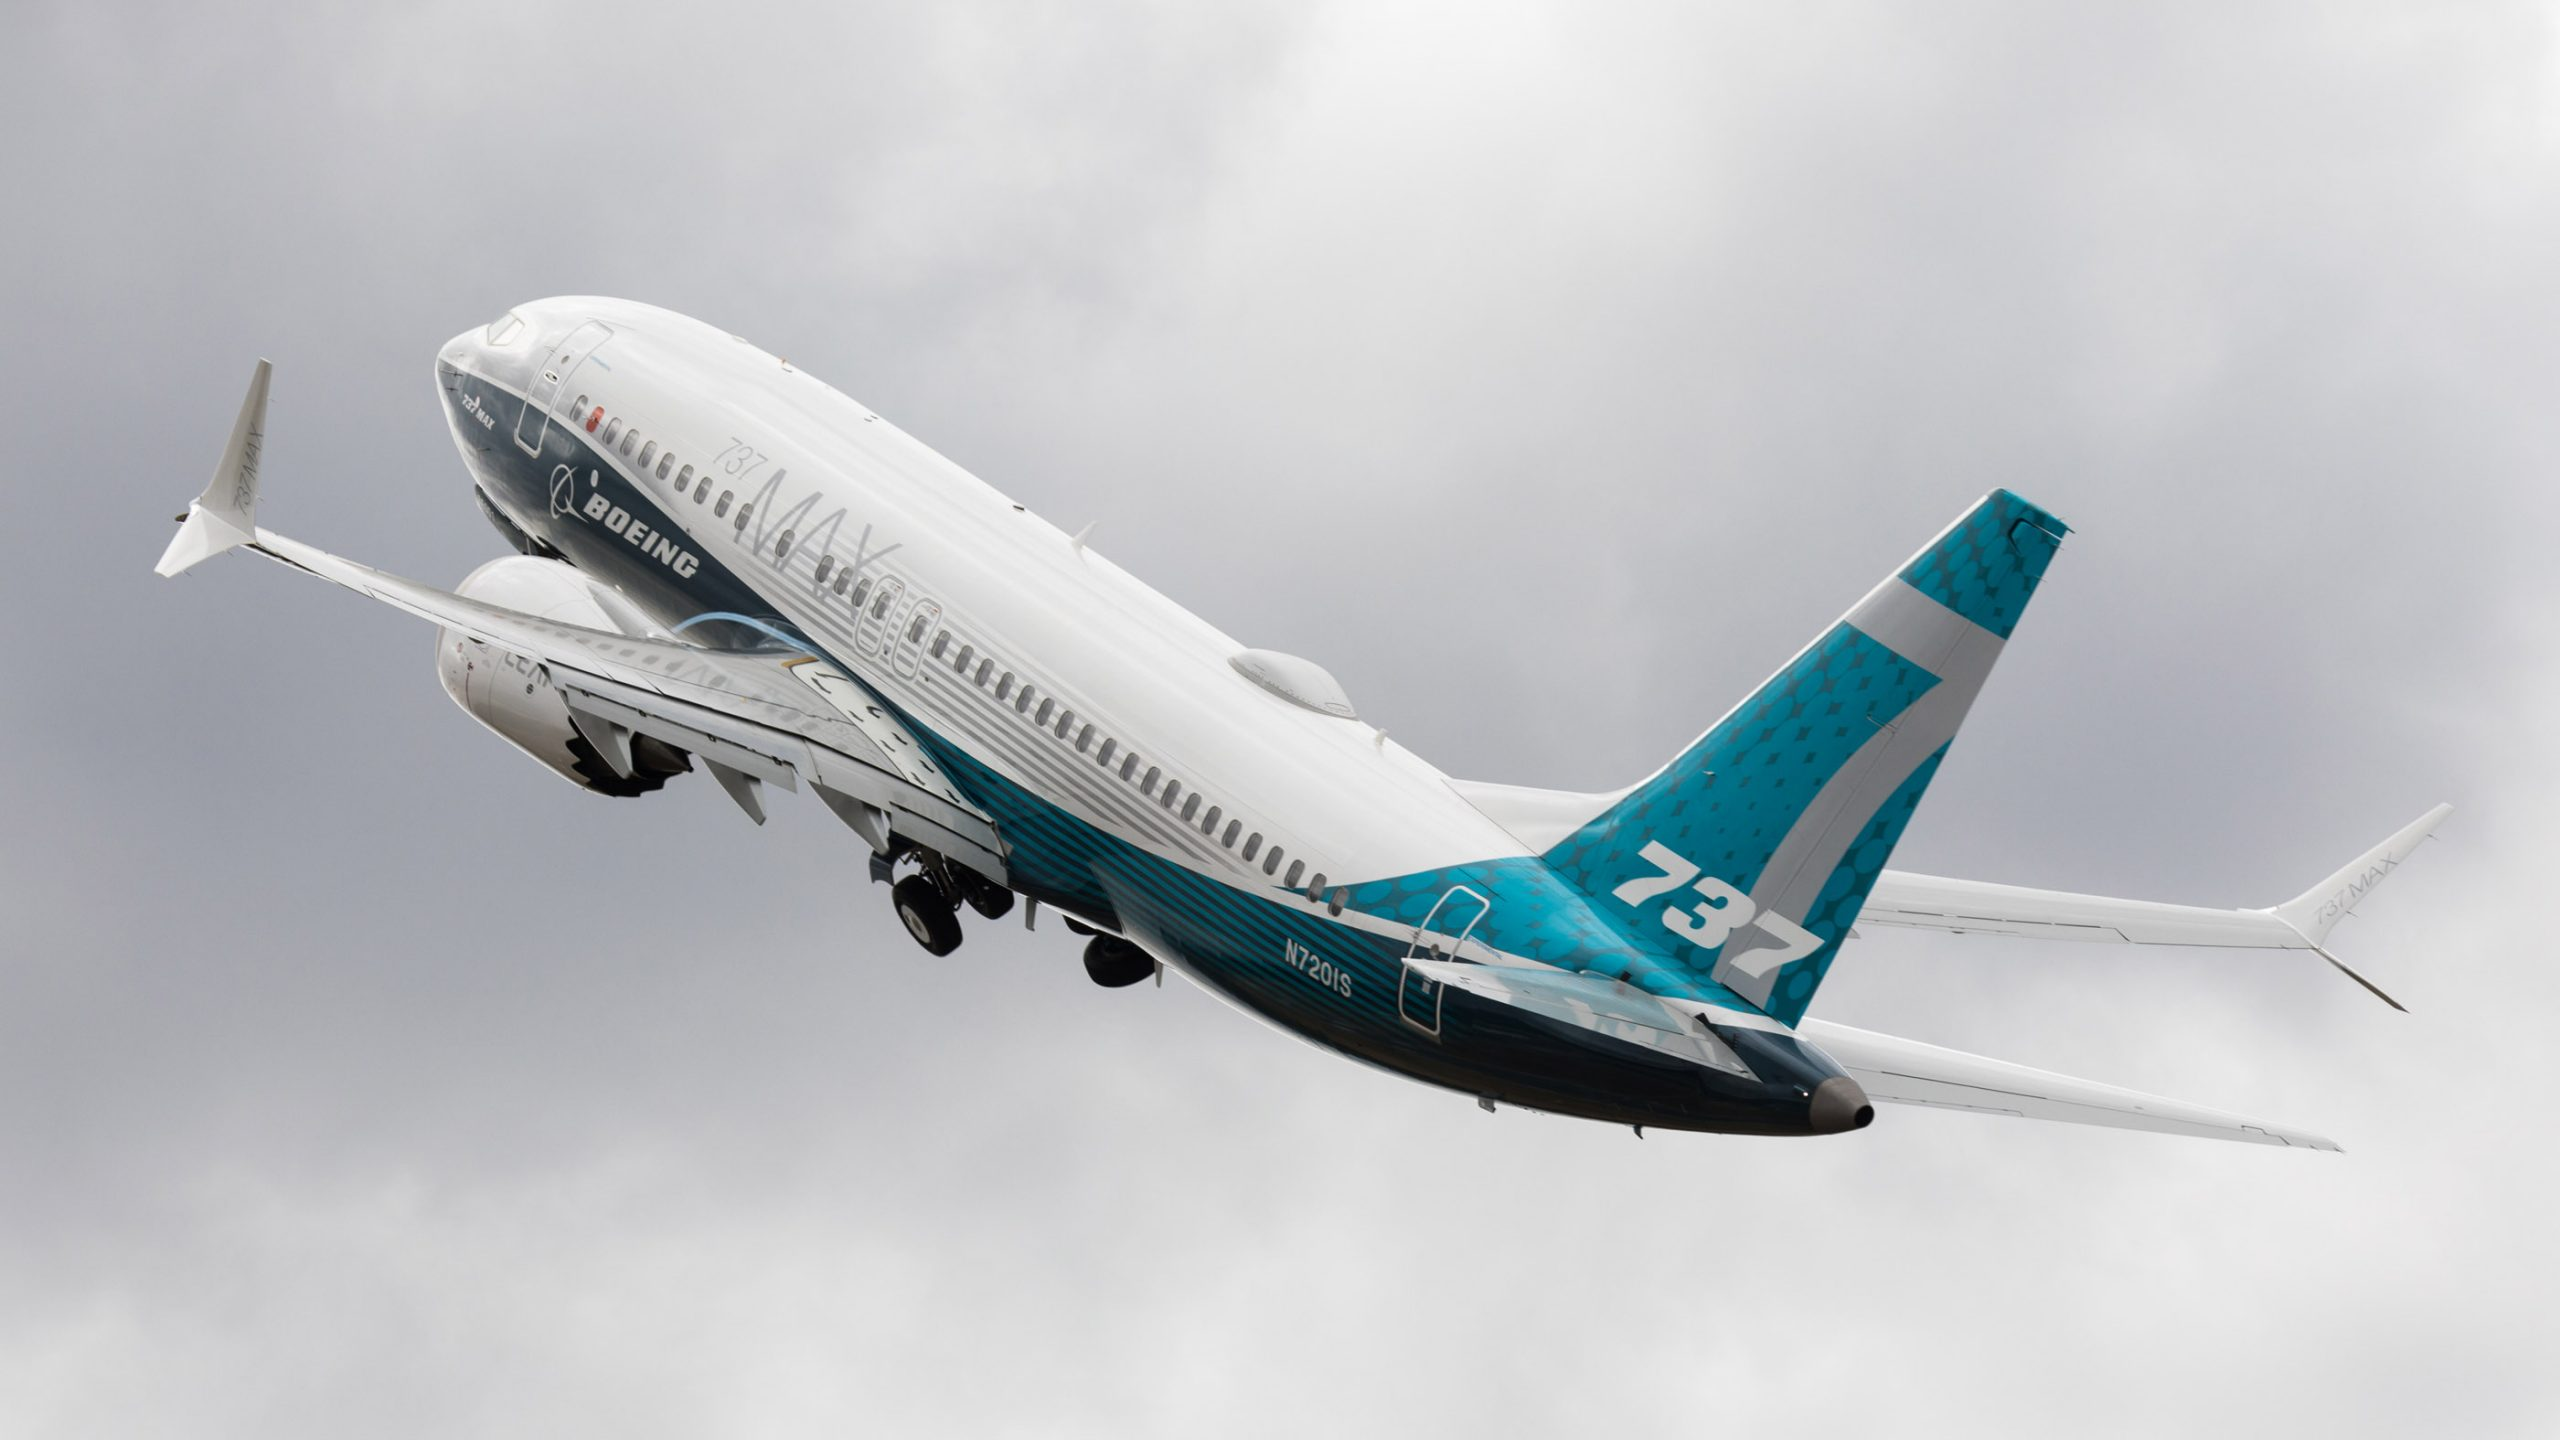 Boeing 737 MAX may get flight permission in Europe till the end of January